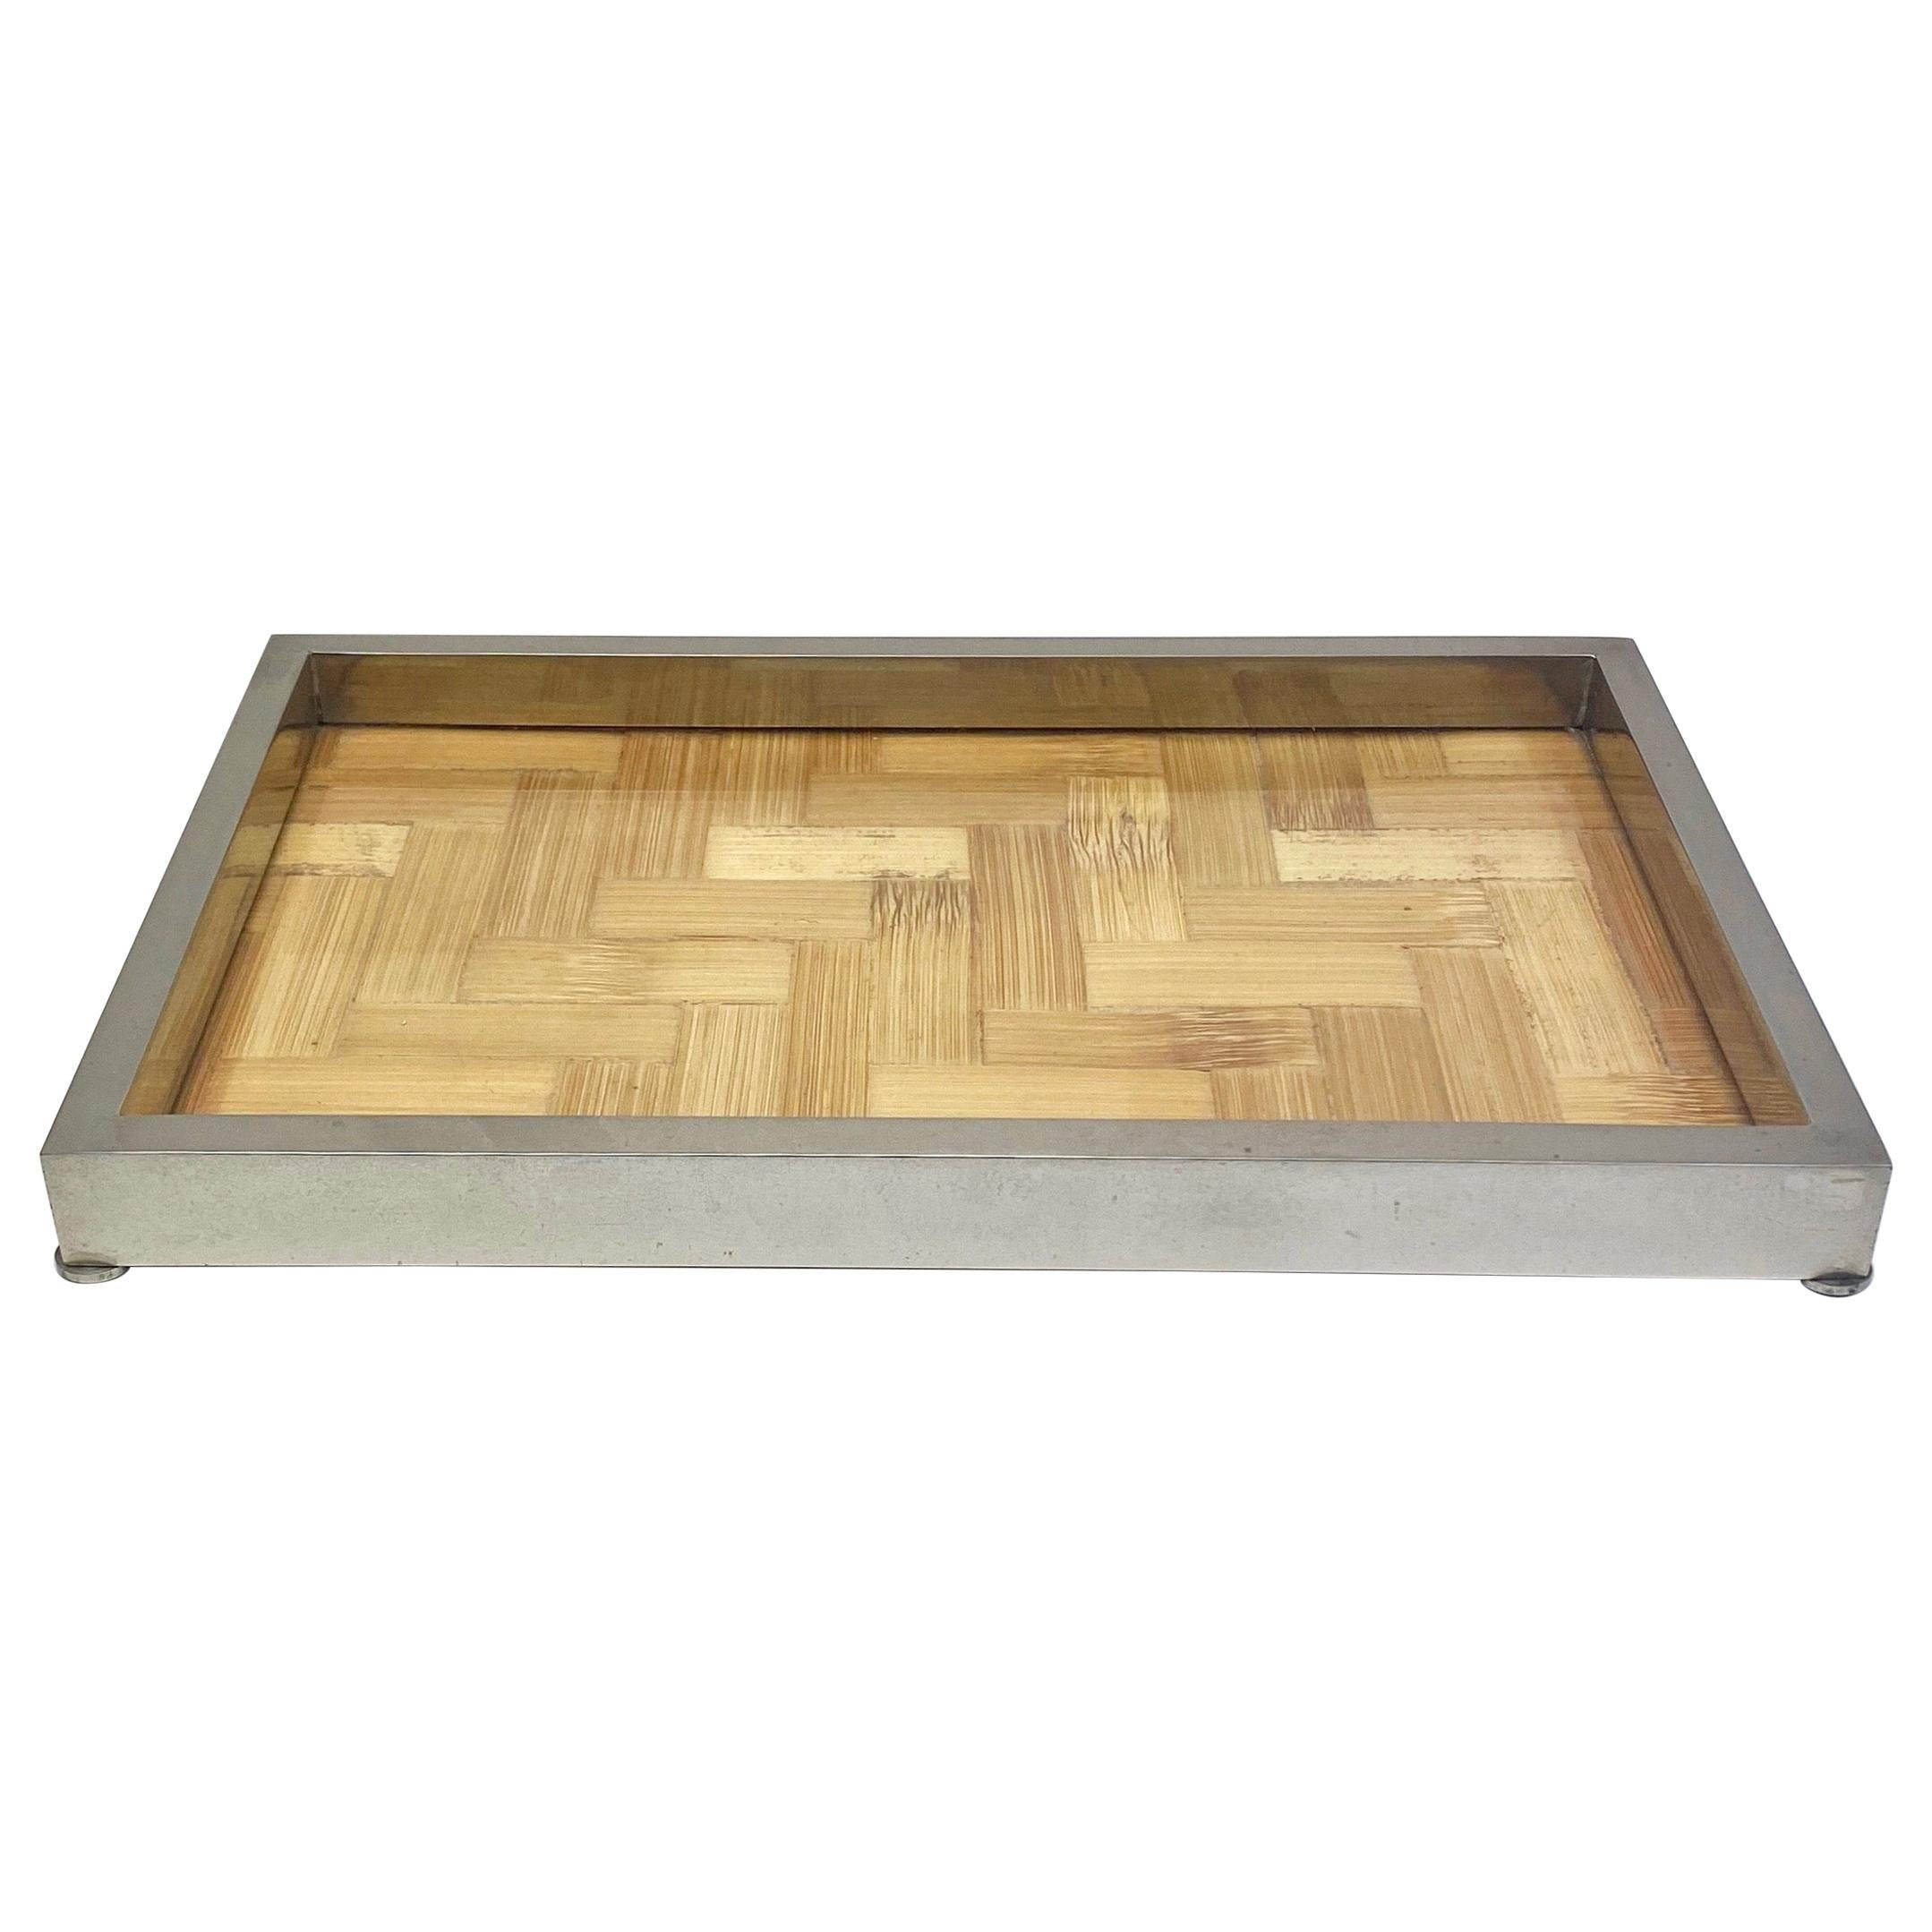 Tommaso Barbi Centrepiece Tray in Chrome, Glass and Bamboo, Italy, 1970s